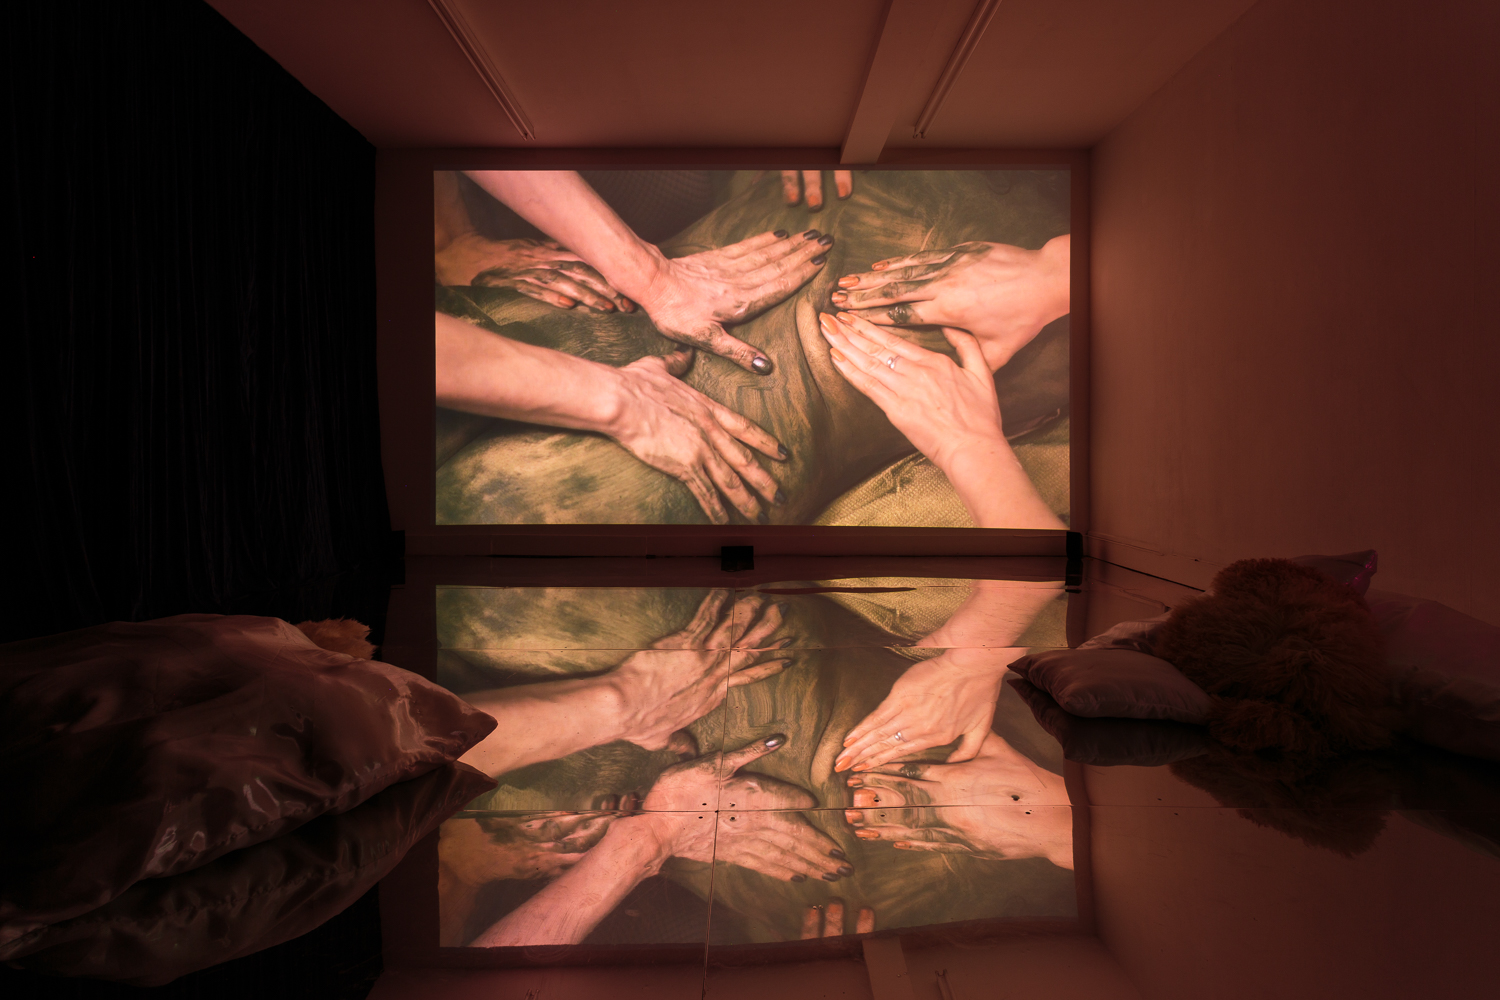 Zoe Williams, Sunday Fantasy, 2019, installation view, film co-directed by AmyGwatkin, courtesy of the artist andAntoineLevi gallery, Paris. Commissioned byMimosa House and supported by ArtsCouncil England. Photo: Tim Bowditch